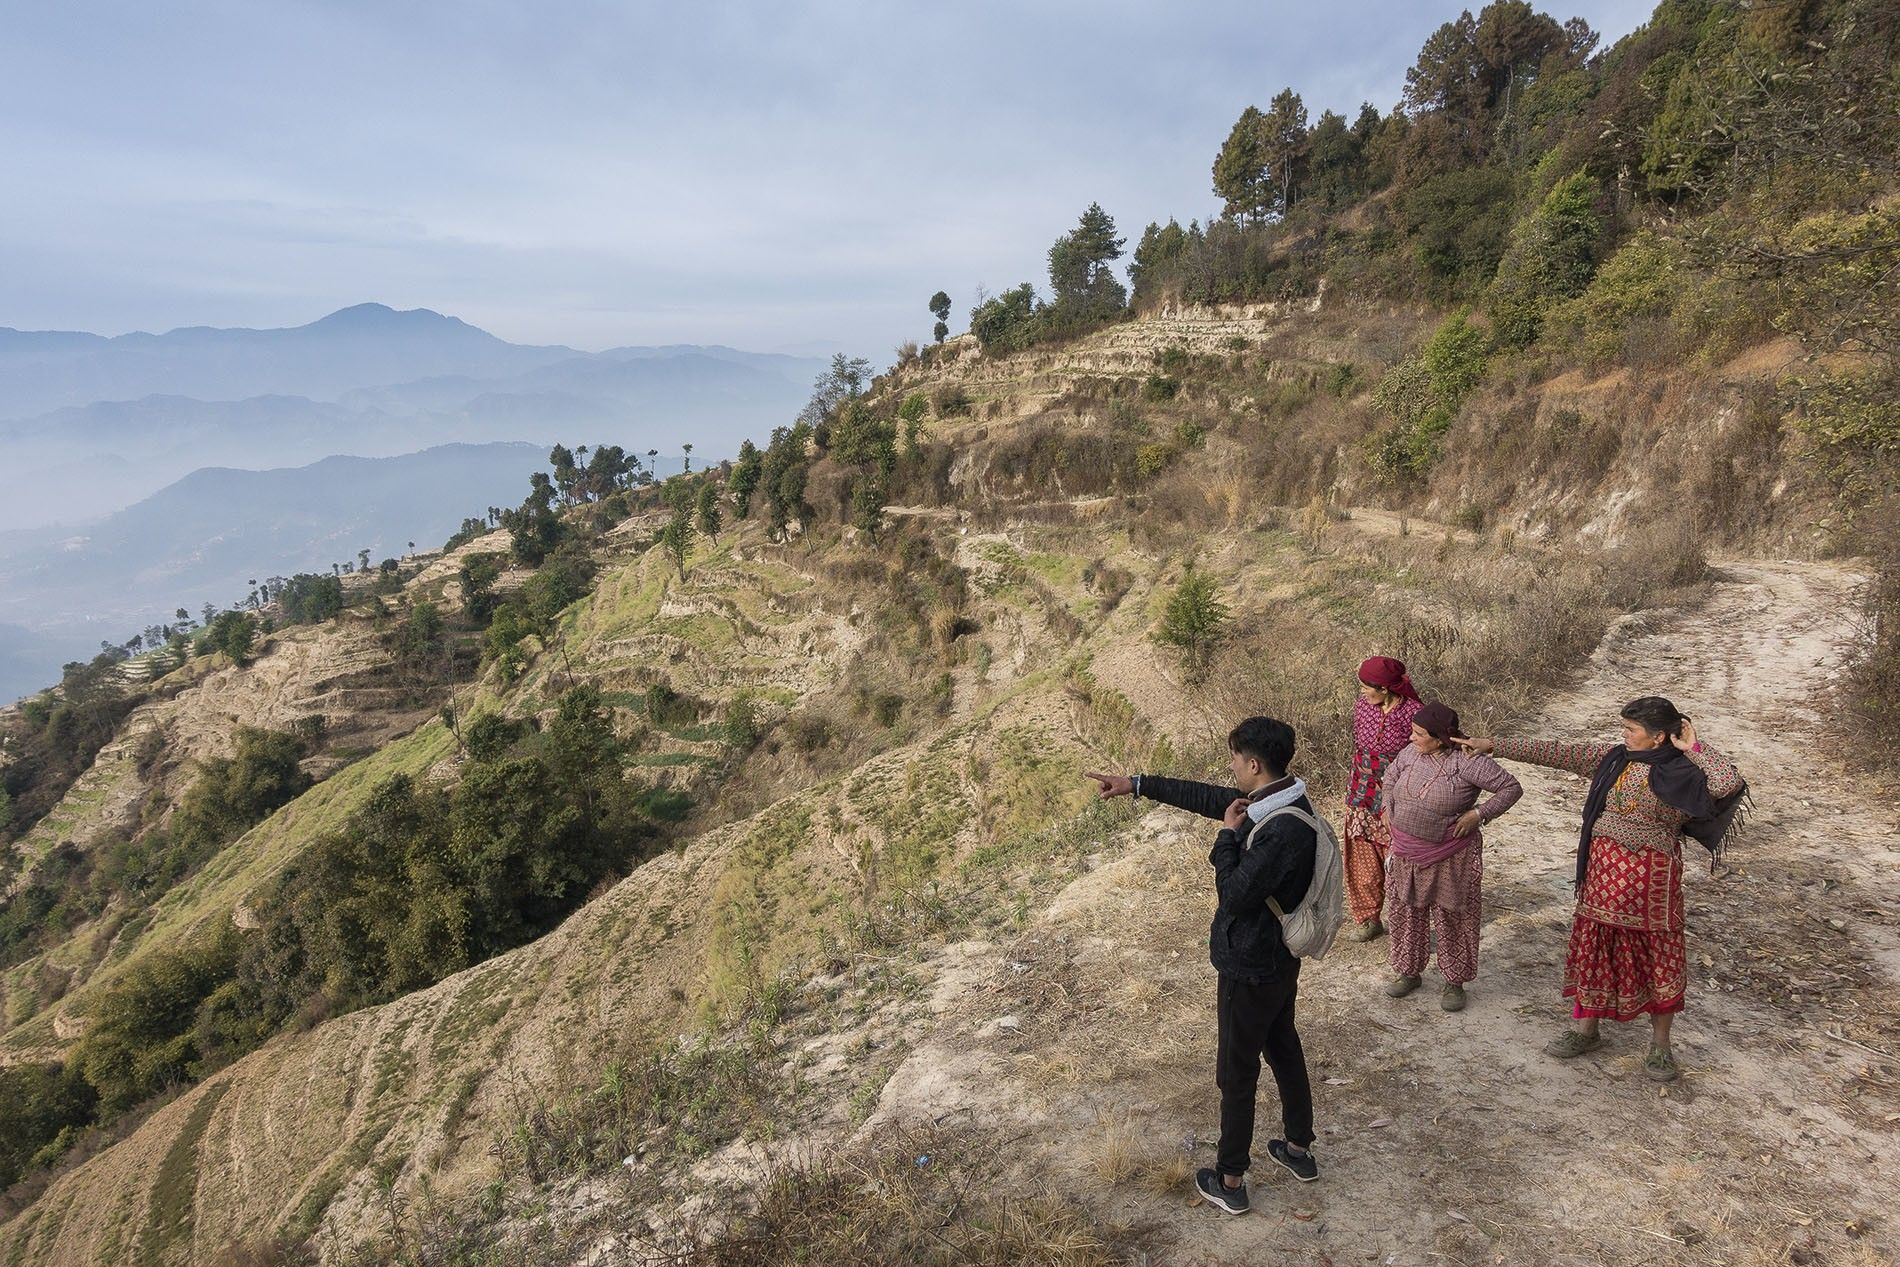 A guide from Nagarkot, being shown a shortcut on a trek from Nagarkot to Dhulikhel.